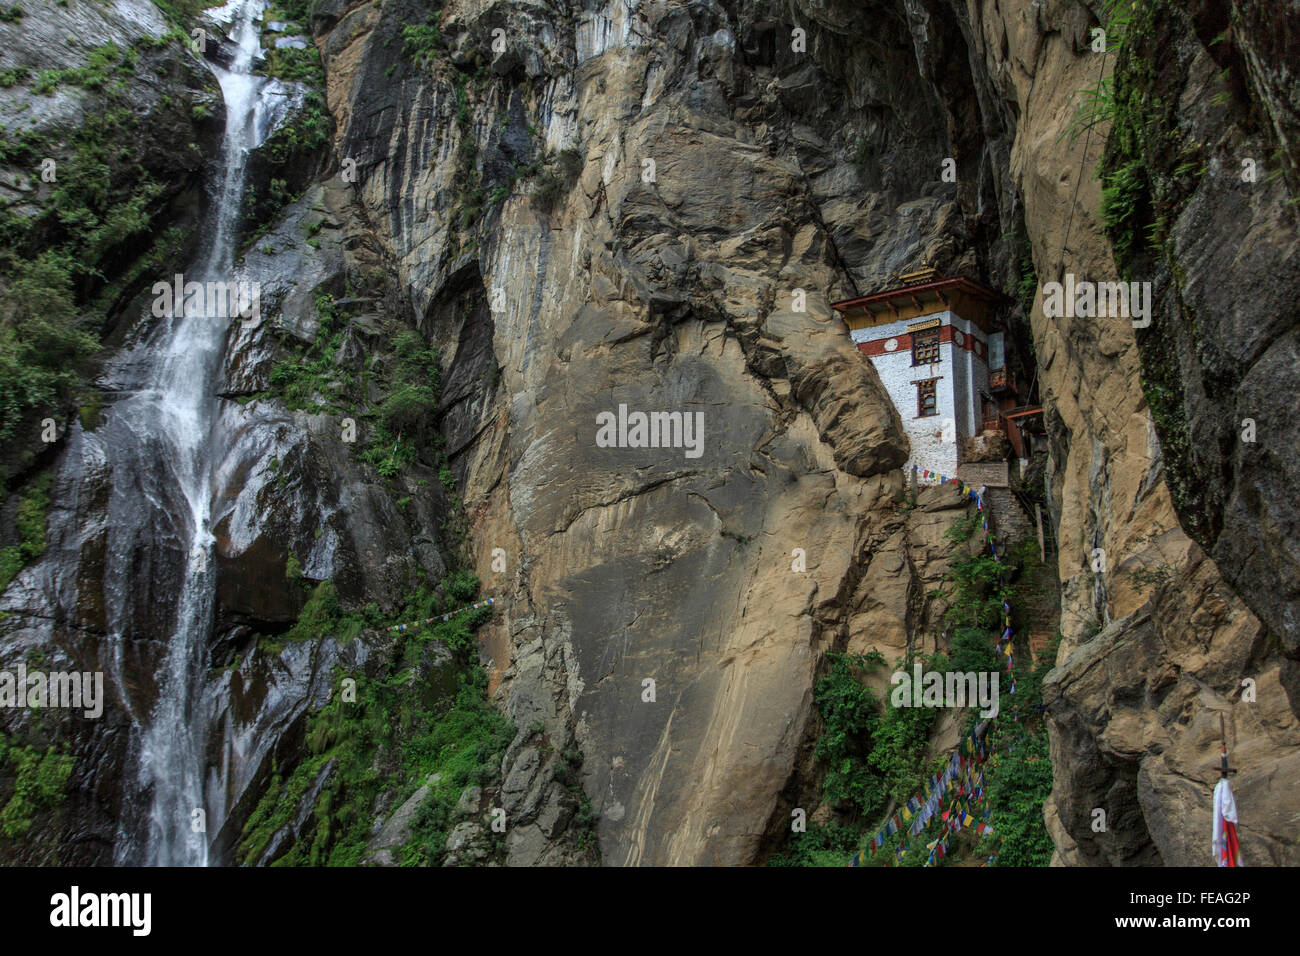 A waterfall near Taktsang monastery in Bhutan - Stock Image